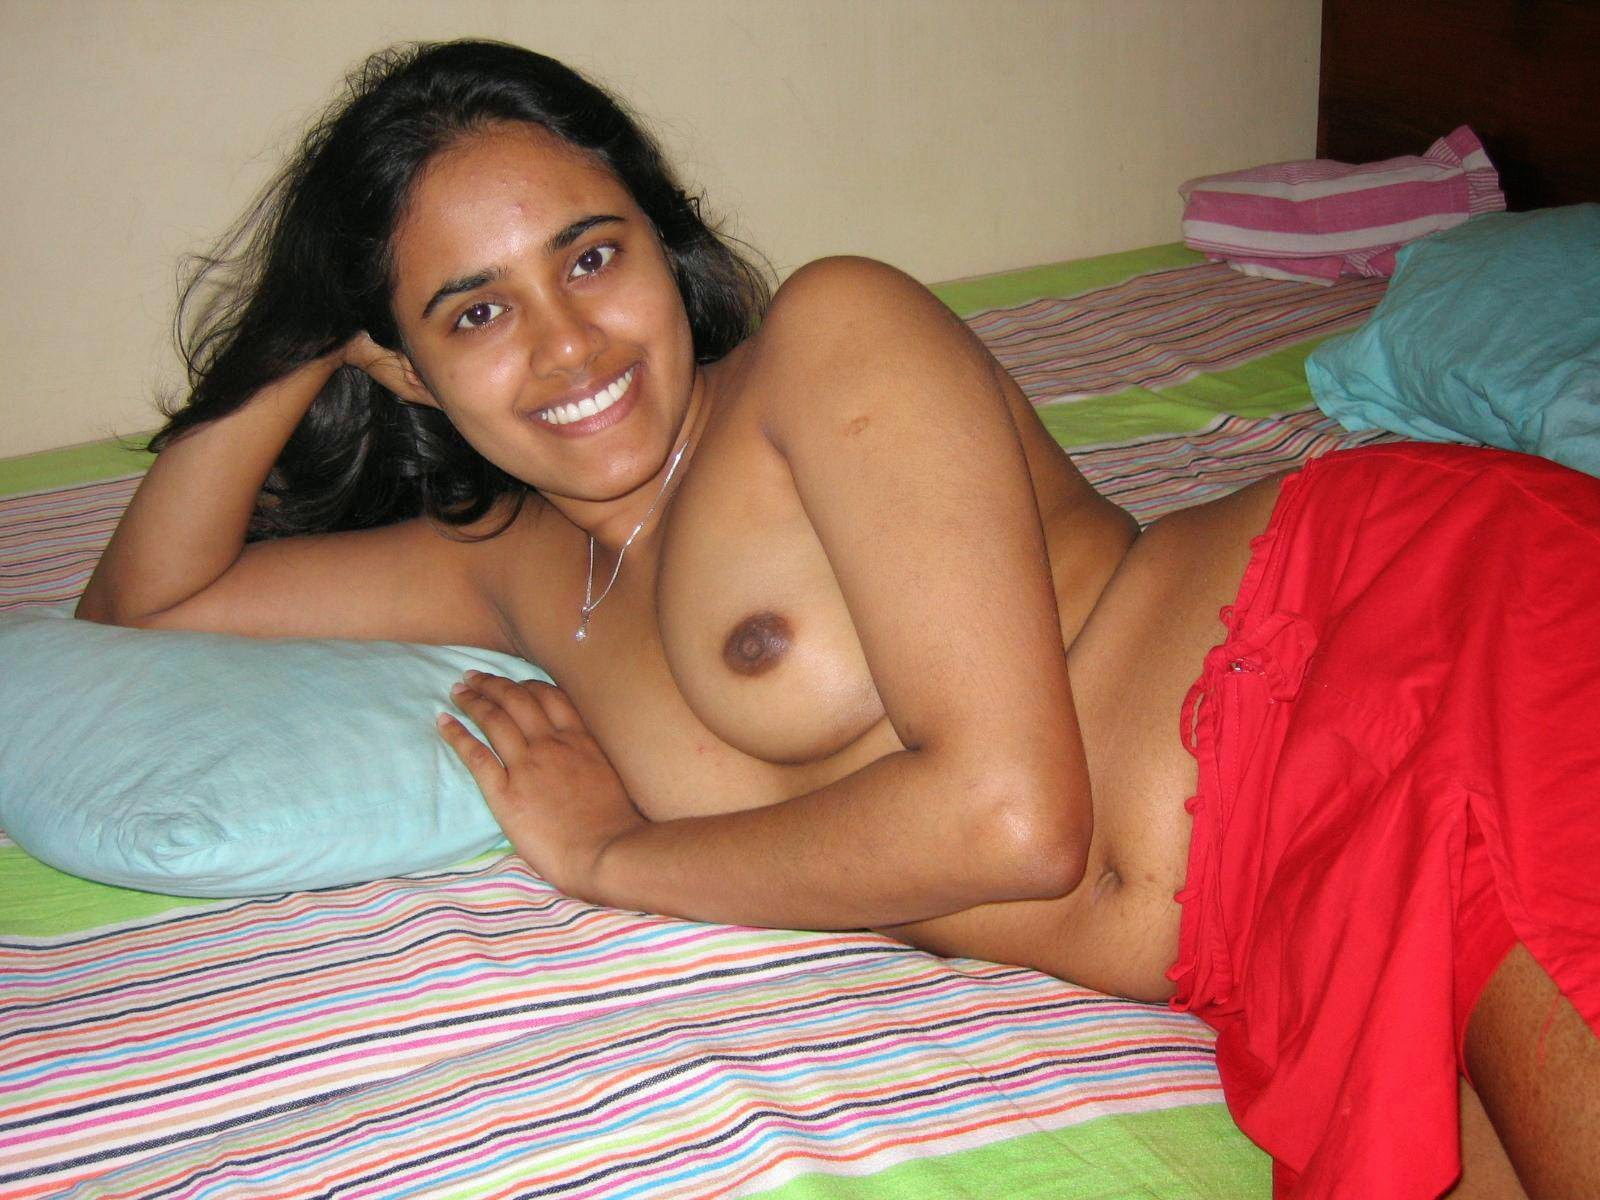 Srilanka girls boobs that ended